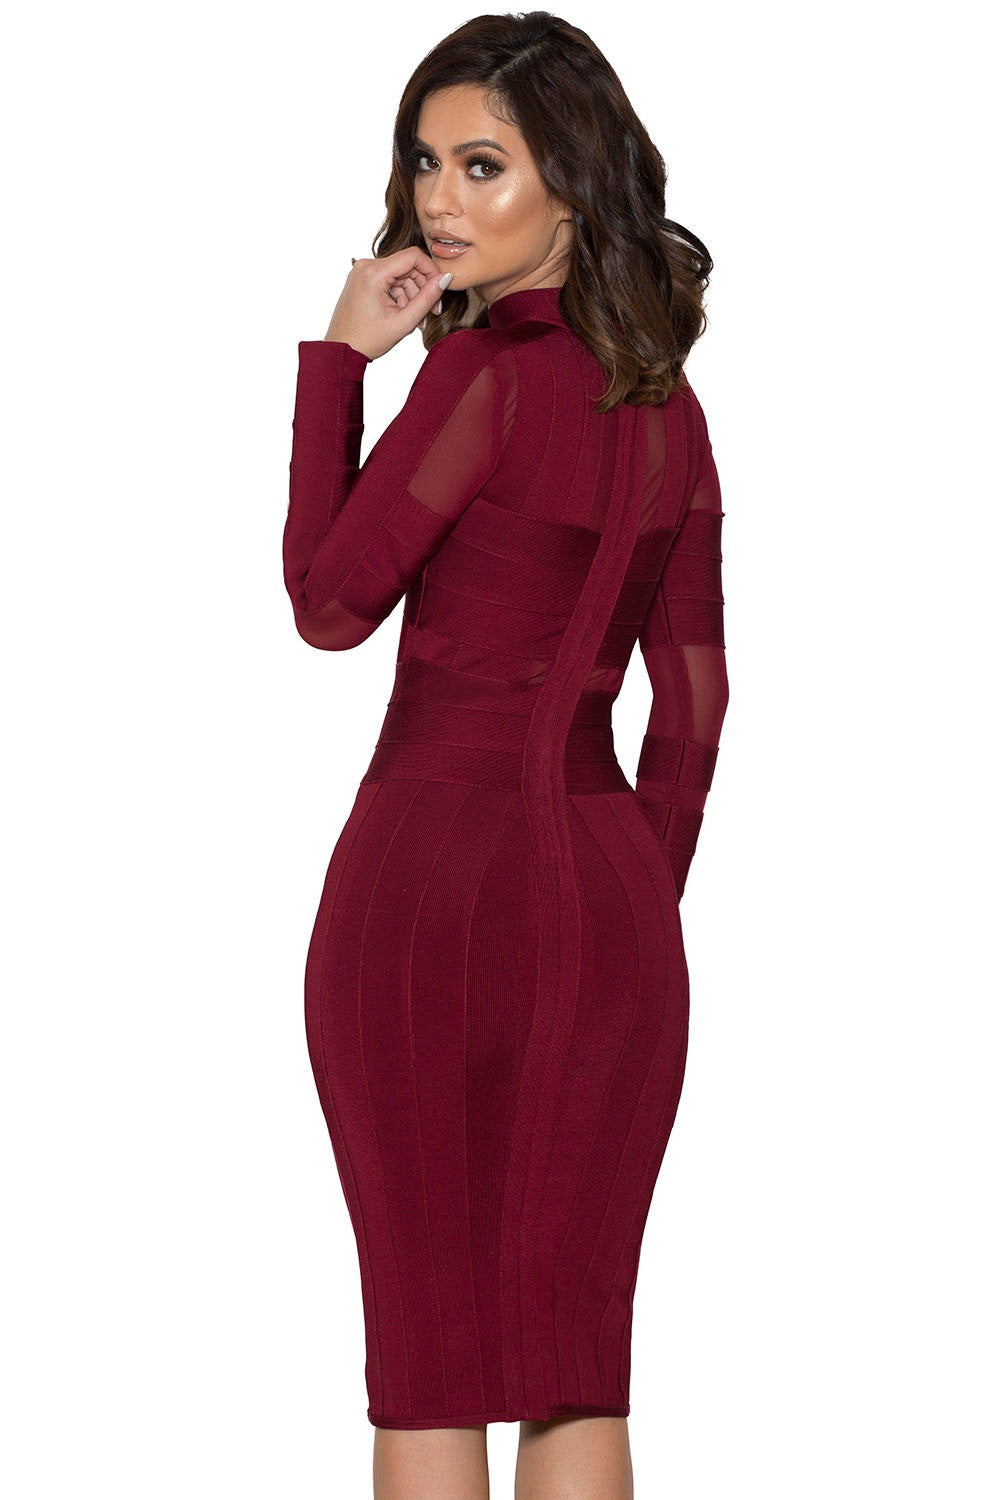 Monica Wine Bandage Dress